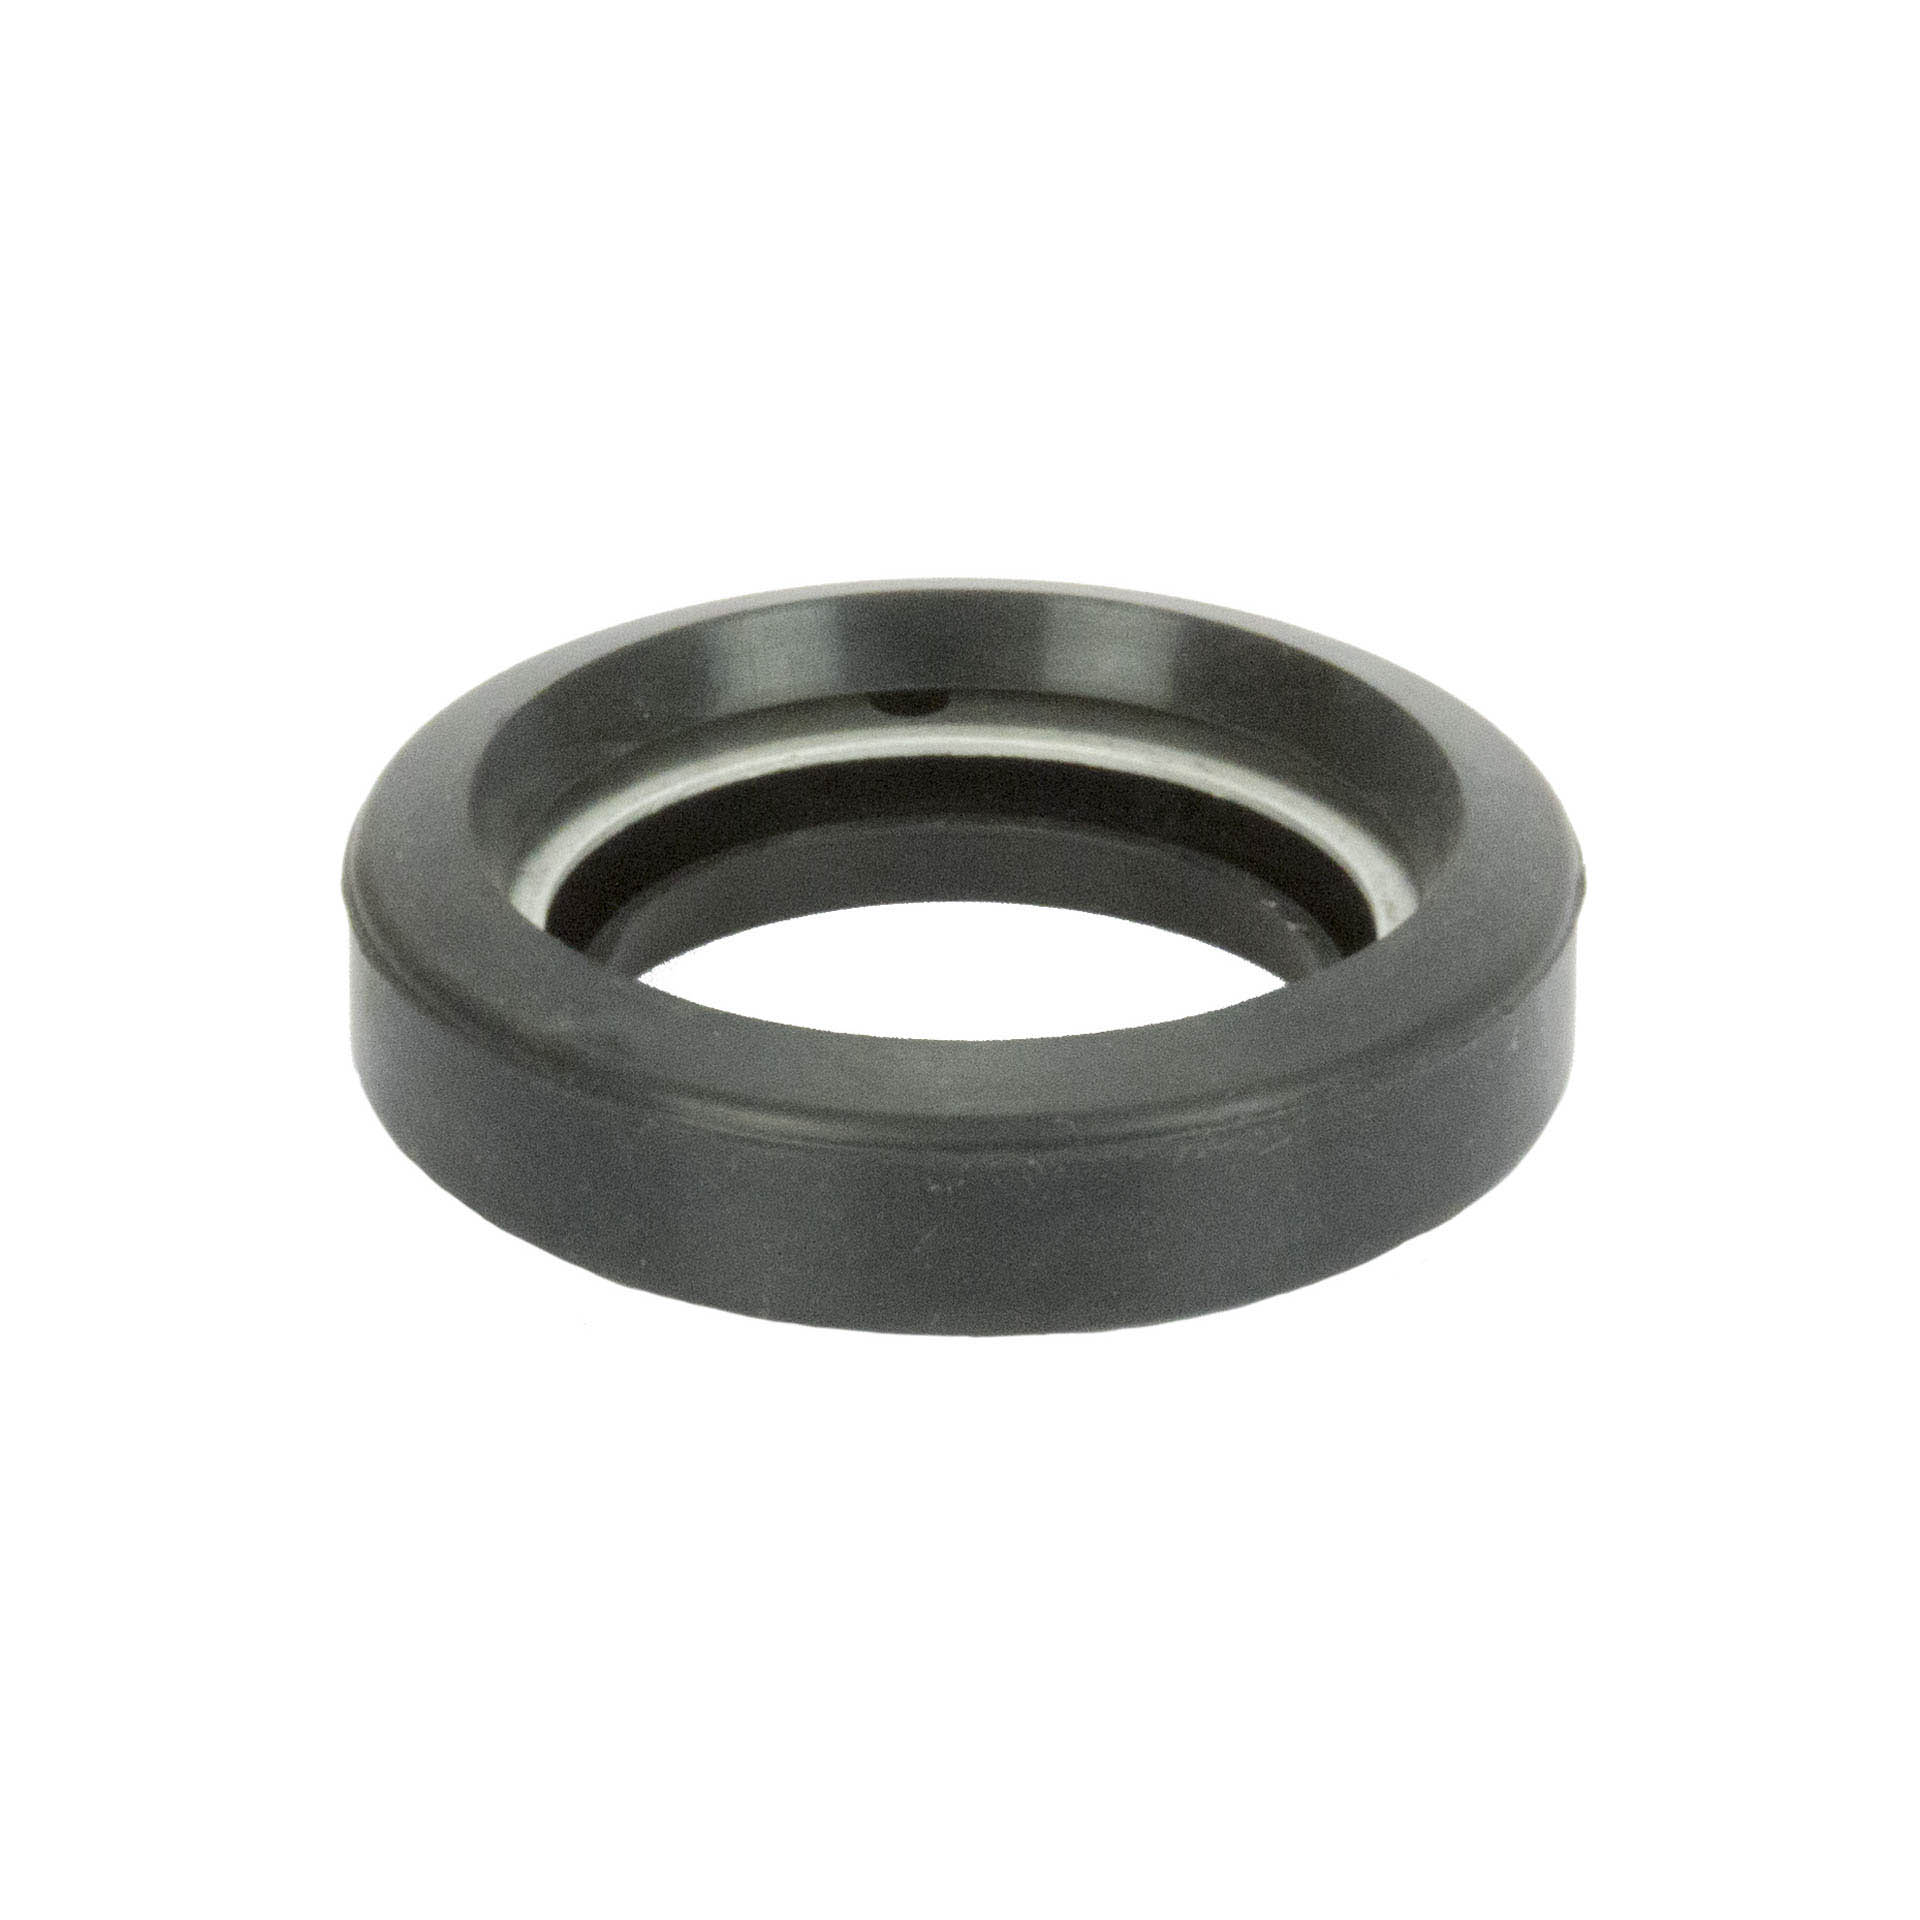 Buy reducing groove coupling gasket online at access truck